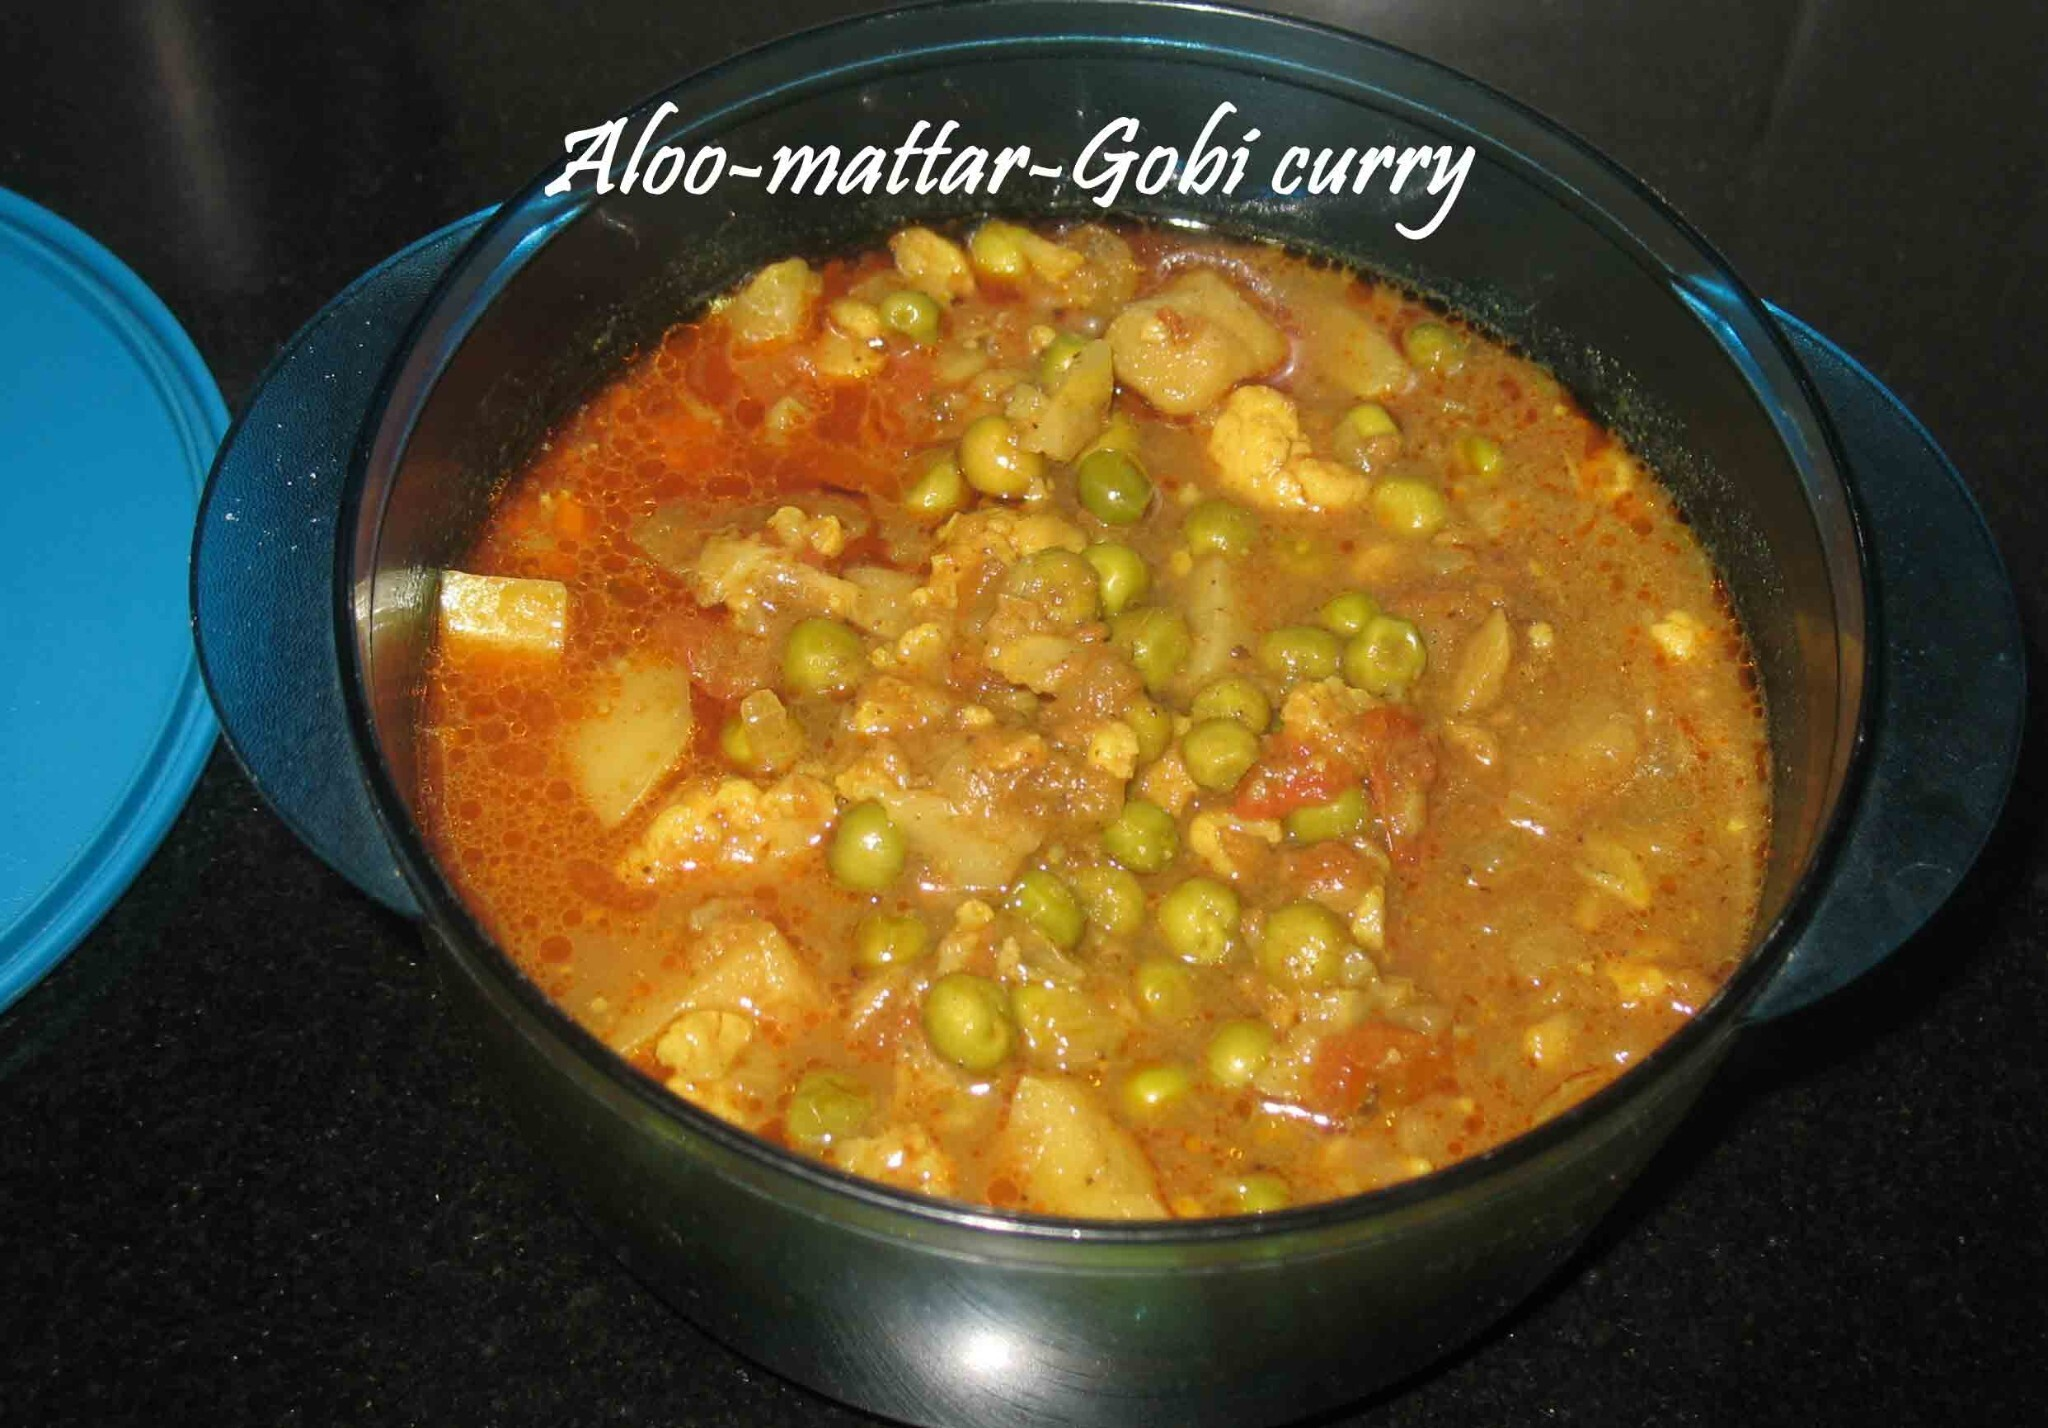 Aloo mattar Gobi curry